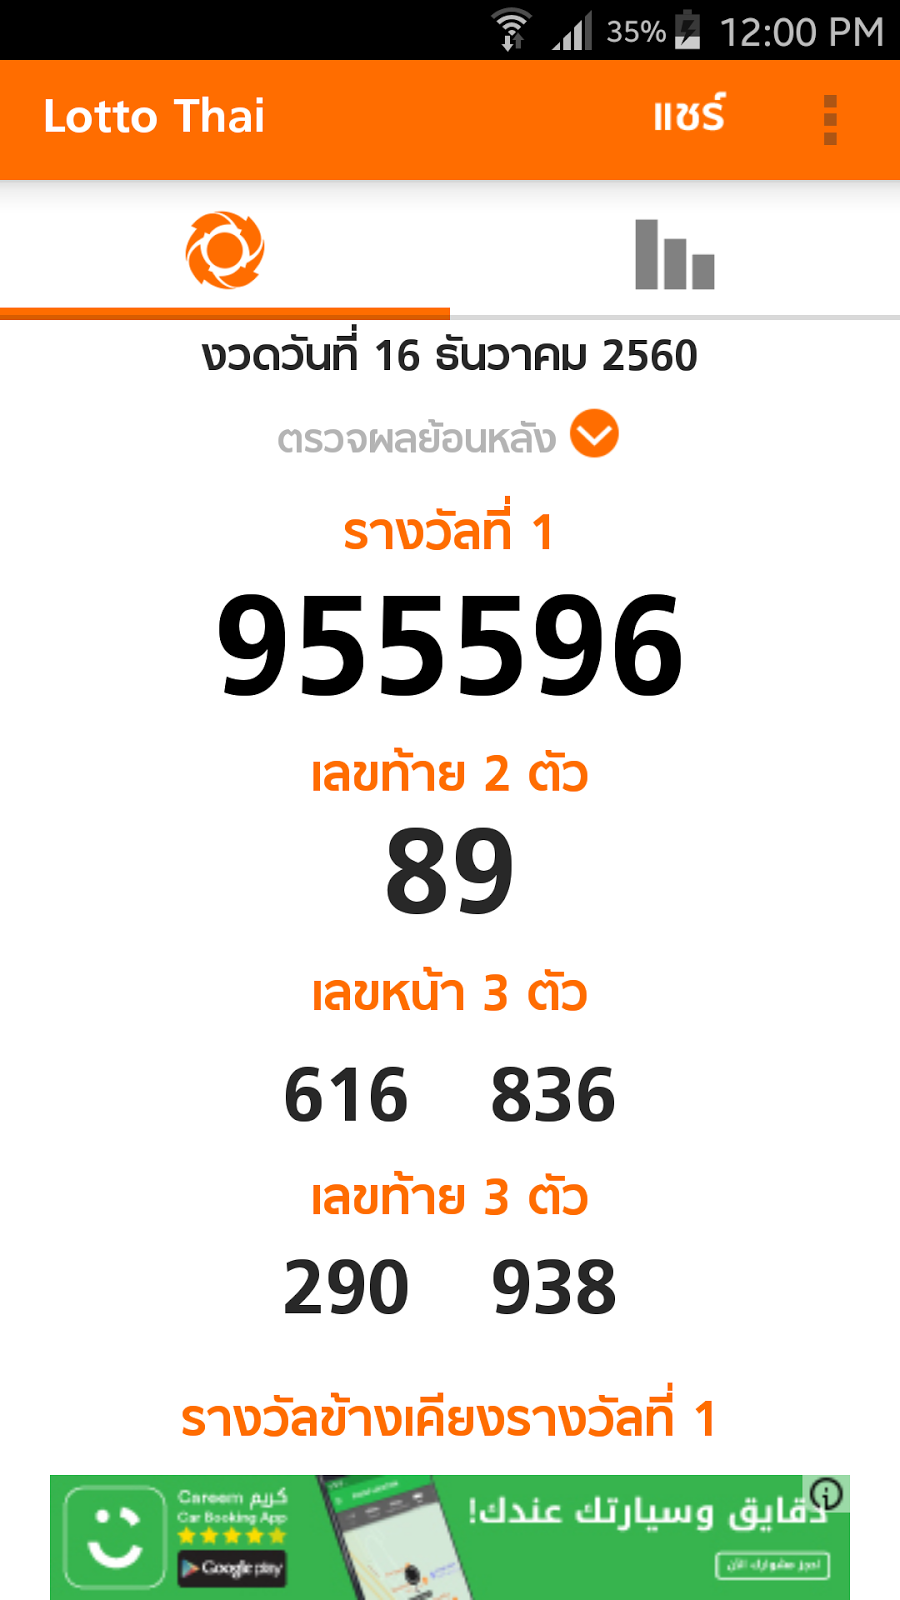 LOTTO RESULT NOW